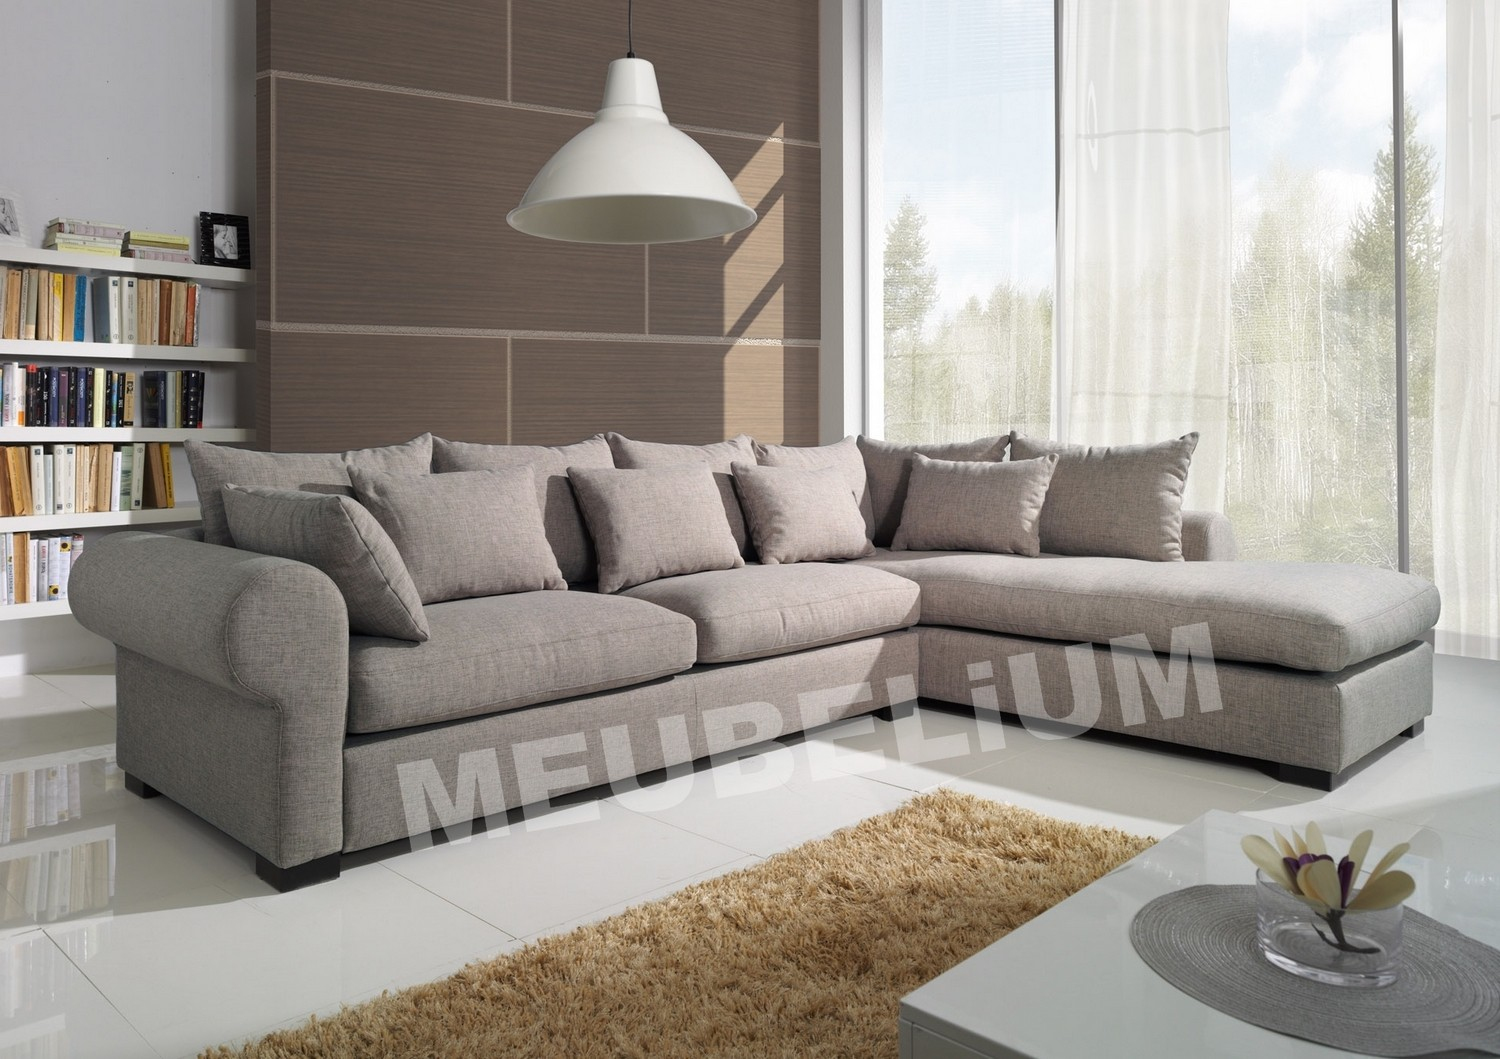 Canape Angle Cdiscount Luxe Collection Canape D Angle Cuir Et Tissu Pas Cher